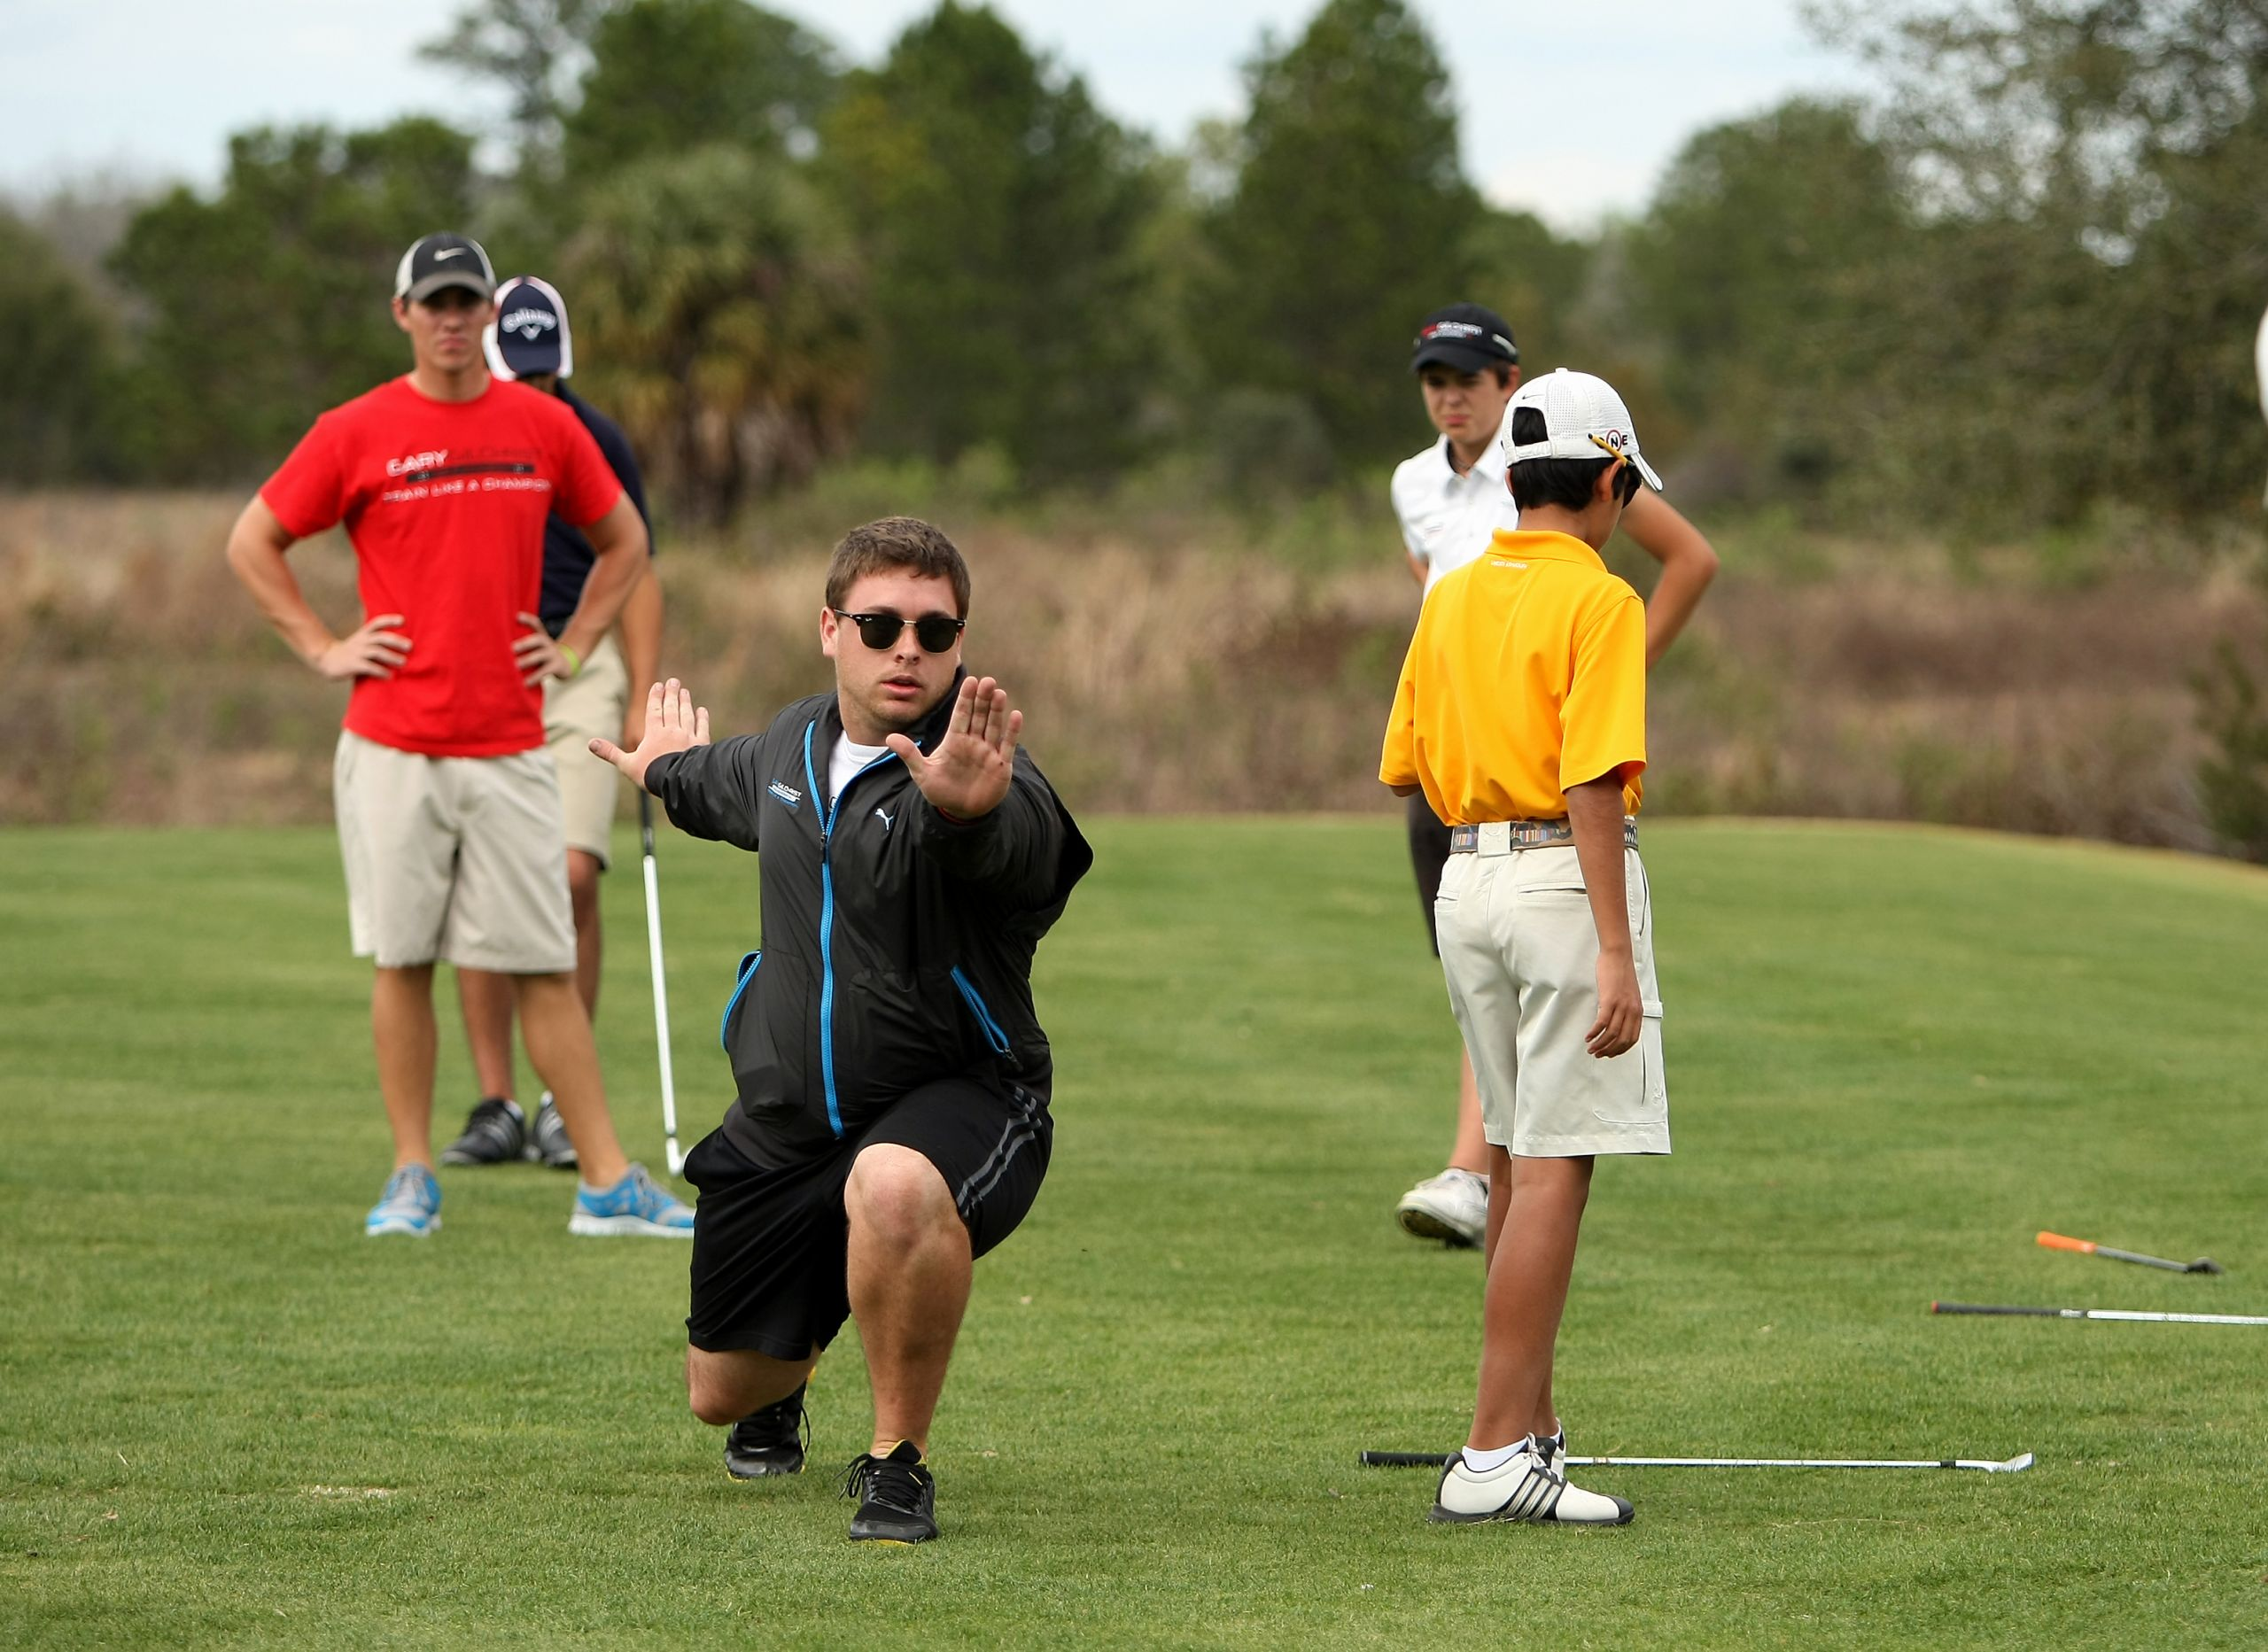 Lifetime Fitness Mission Fresh Junior Academies A Life totally Focused On Golf